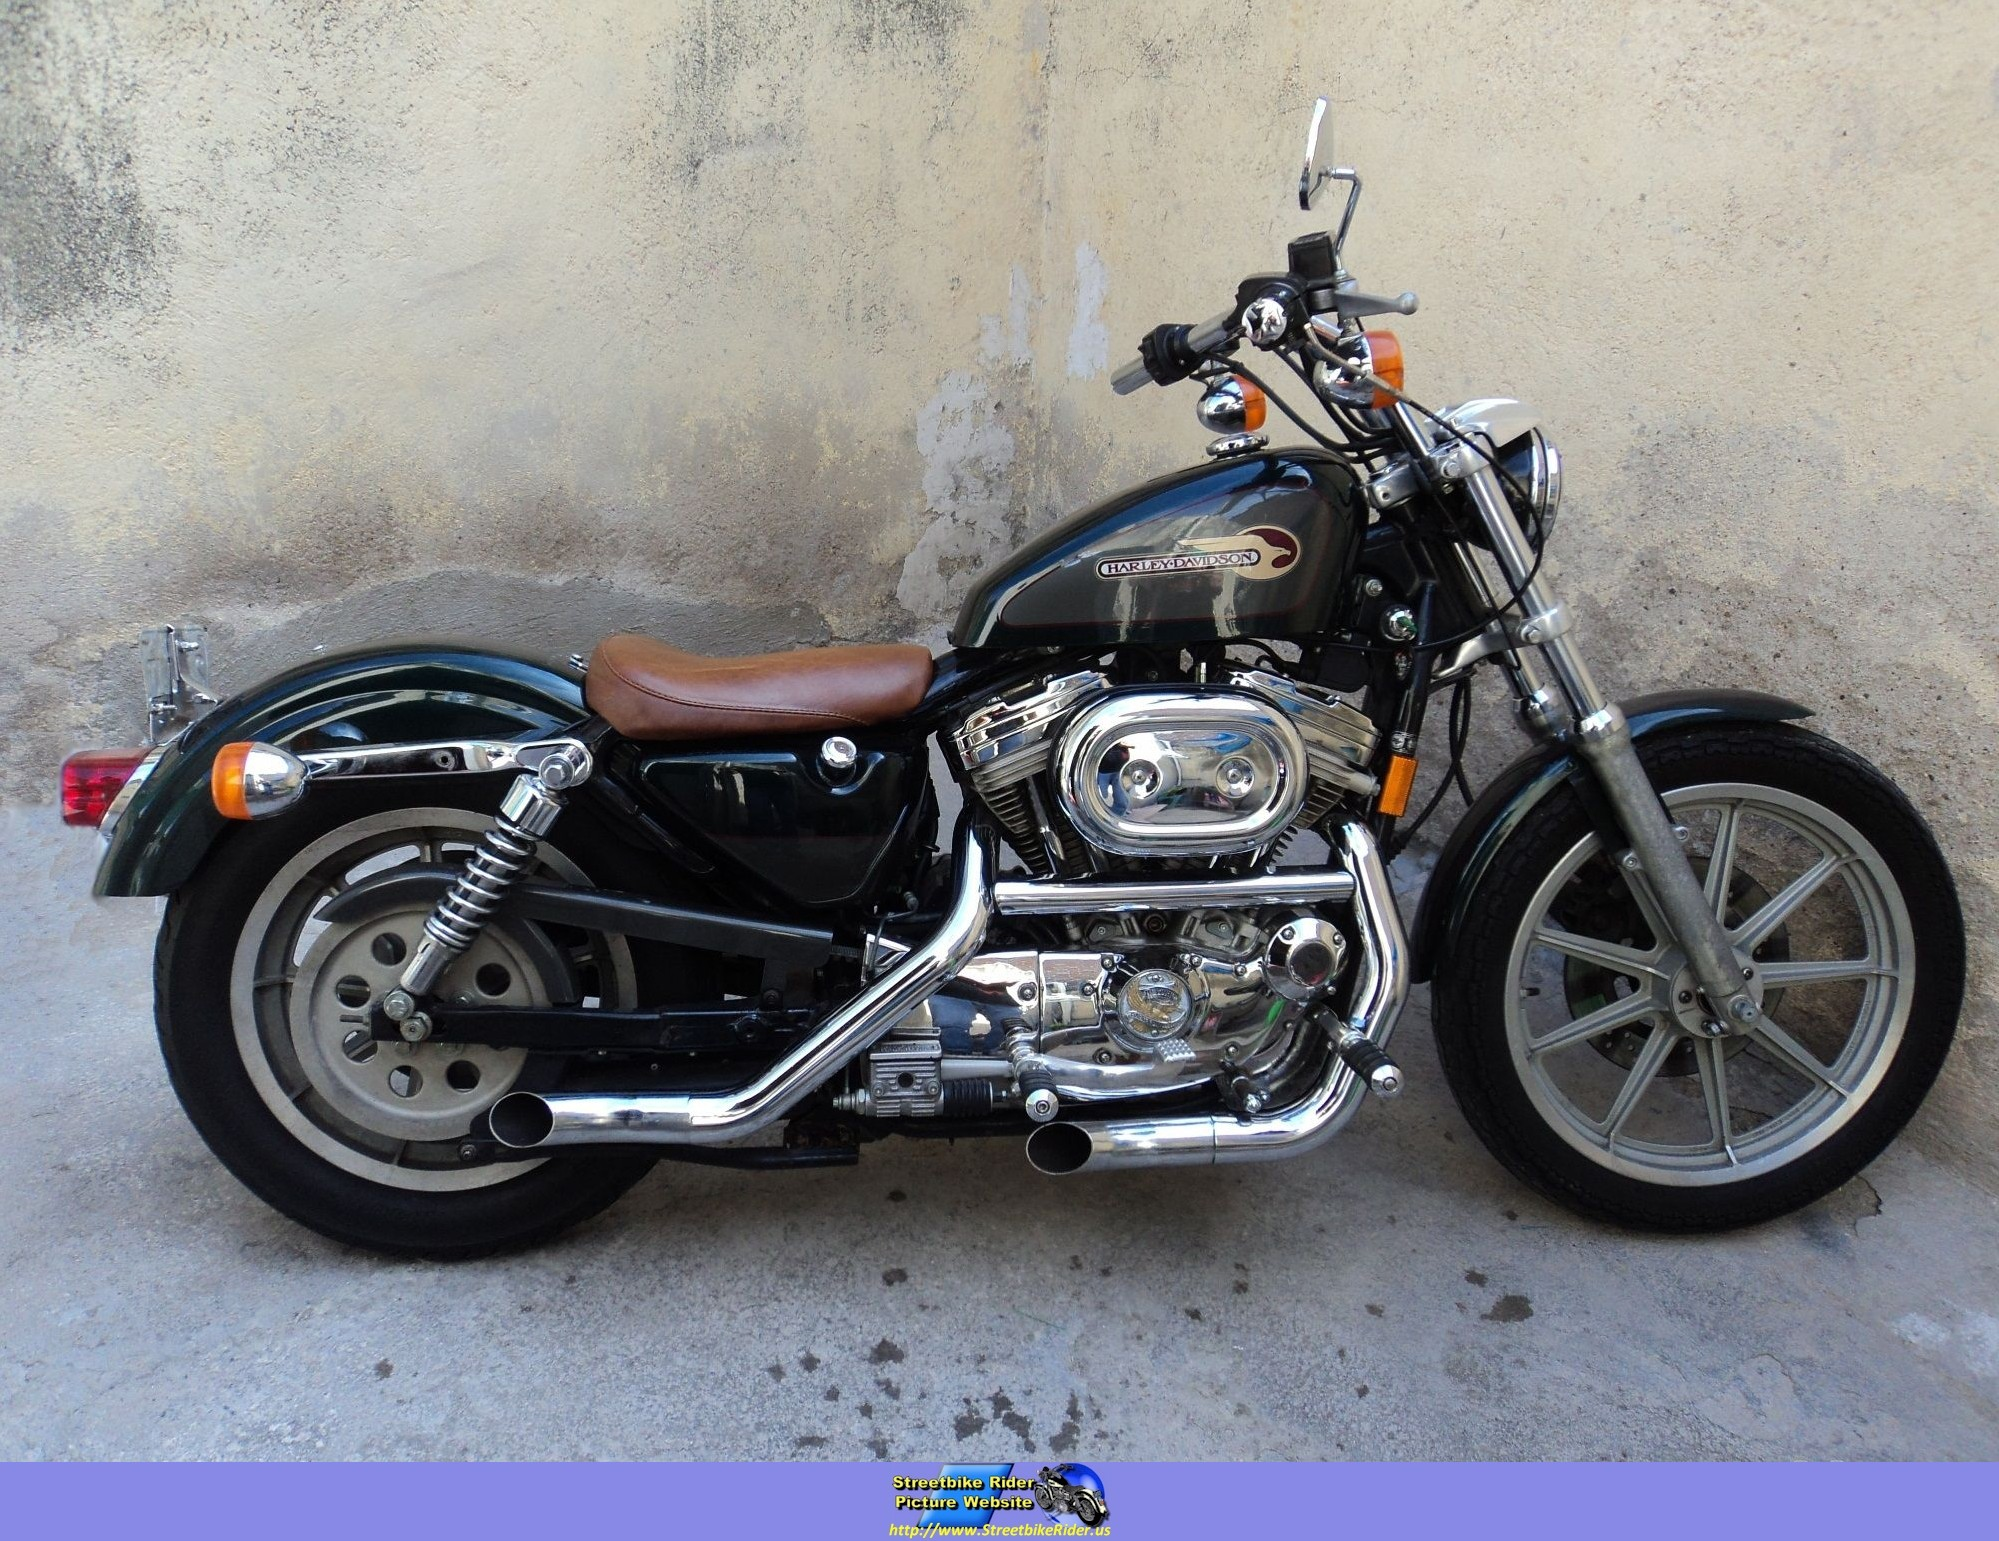 1995 Sportster 1200 Wiring Diagram Reinvent Your Harley Davidson Fdxl Diagrams Free 883 Motorcycle Wallpaper Rh In The Whisps Blogspot Com Pdf